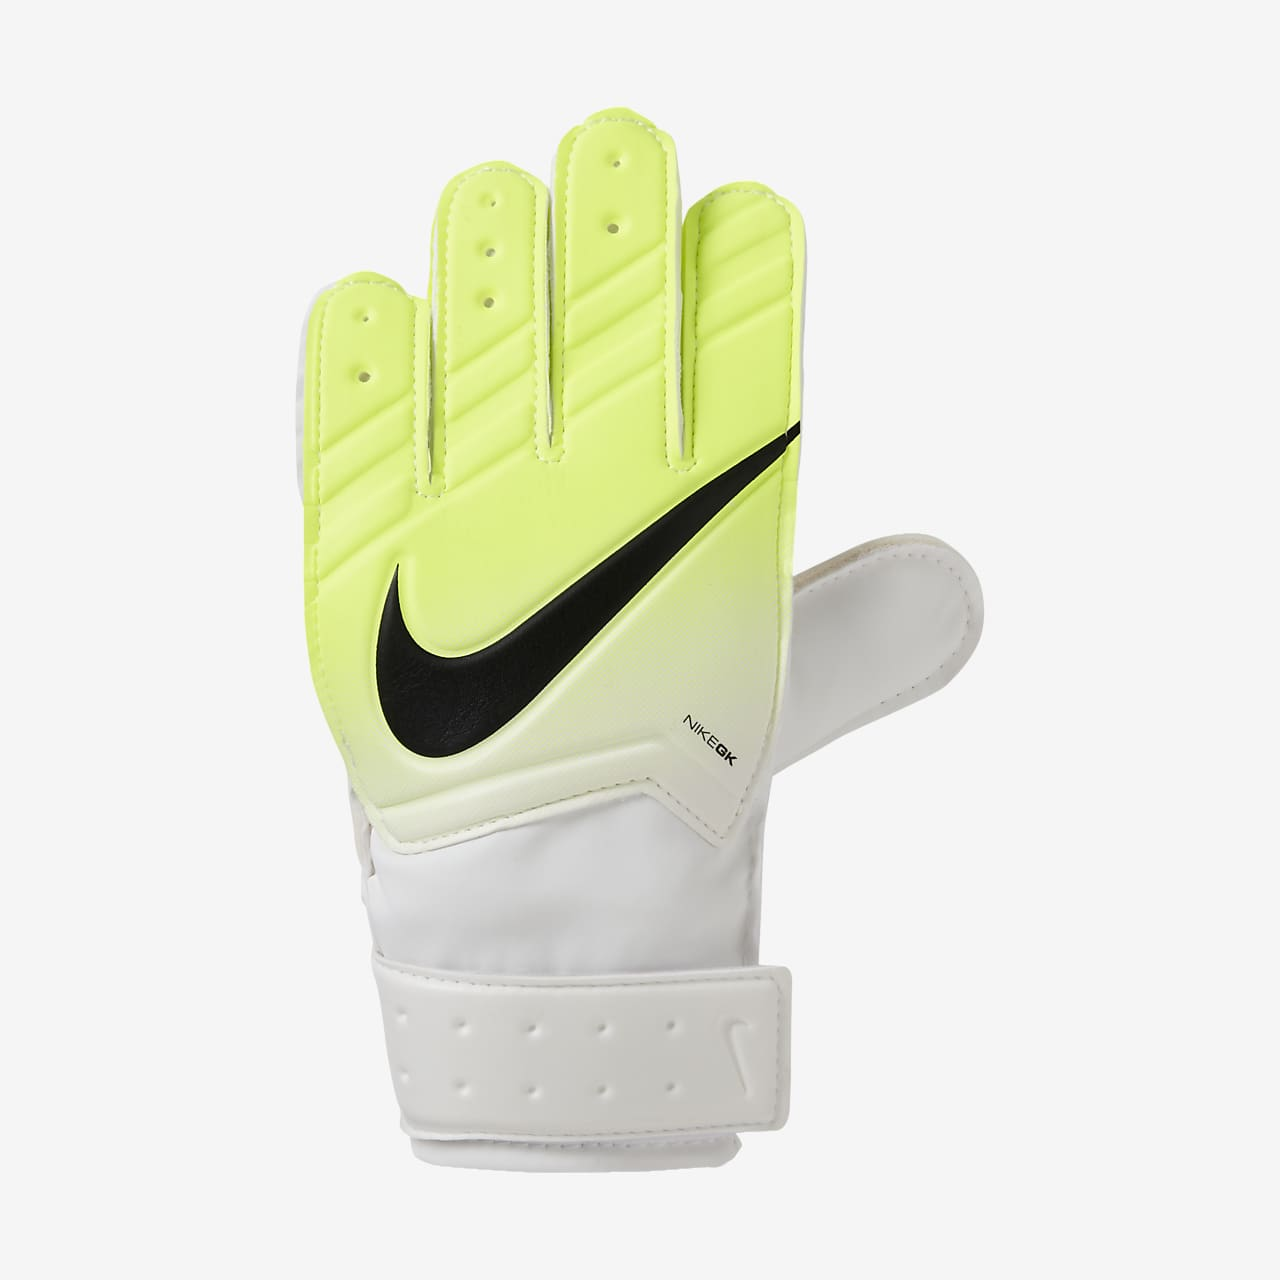 Gants de football Nike Junior Match Goalkeeper pour Enfant plus âgé